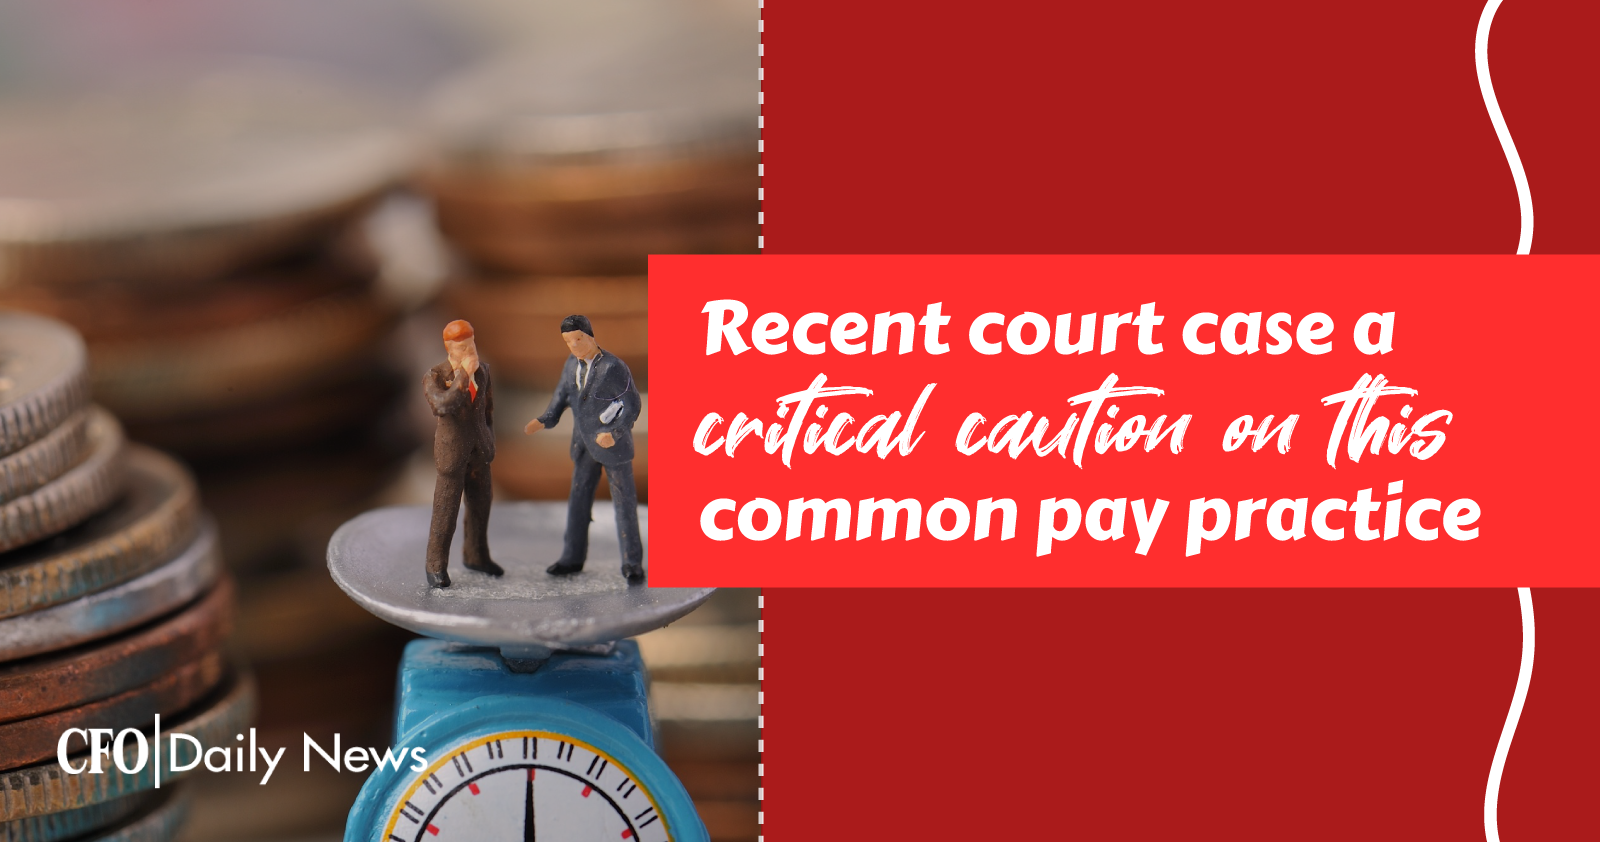 recent court case a critical caution on this common pay practice